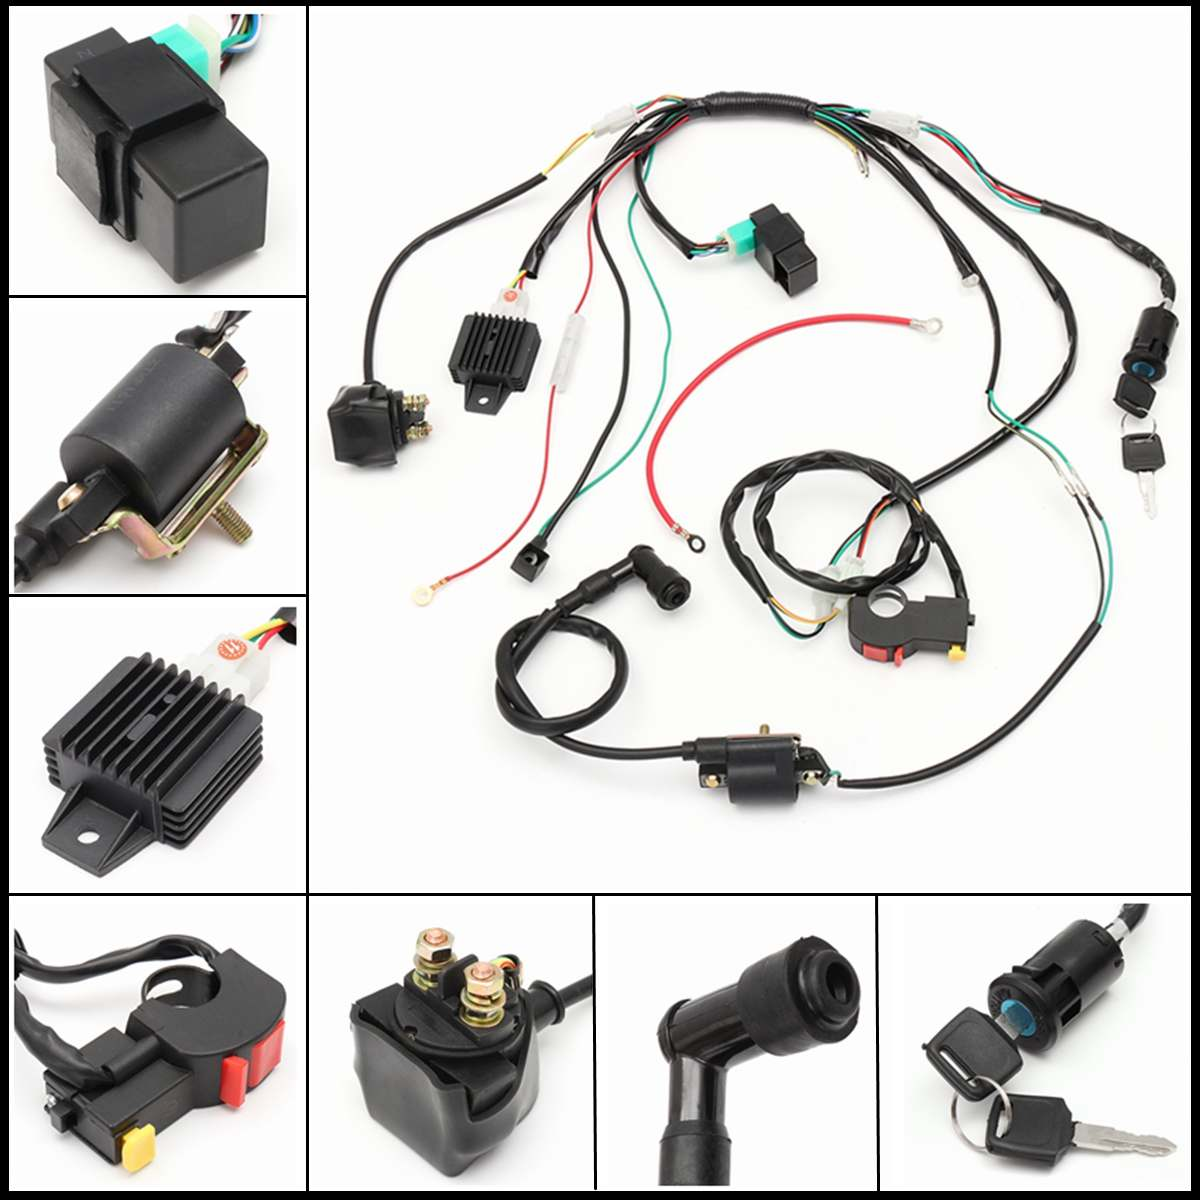 best promo #cd4bb - motorcycle cdi wiring harness loom solenoid ignition  coil rectifier for 50cc 110cc 125cc pit quad dirt bike atv | cicig.co  cicig